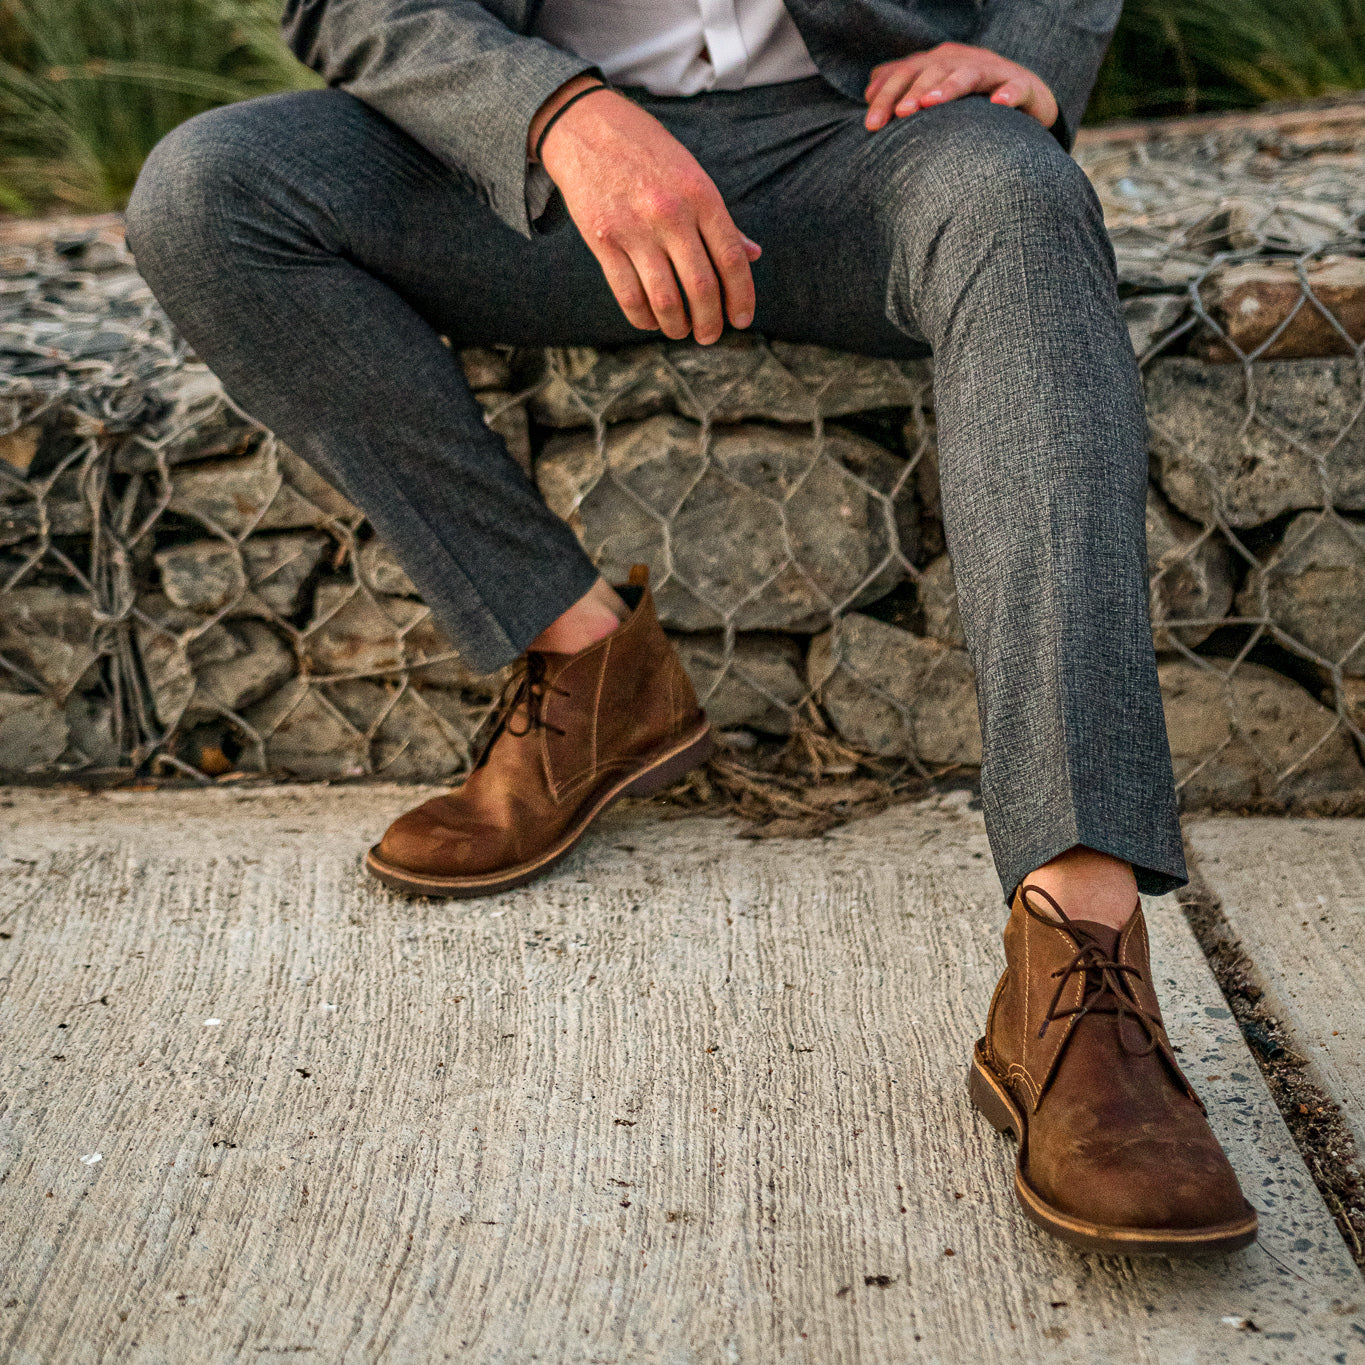 Veldskoen shoes and boots or known as vellies chukka boot ethically and sustainably handcrafted in South Africa sold in united states man sitting on brick / stone wall hand on knees with  grey suit and dark brown chukka shoes